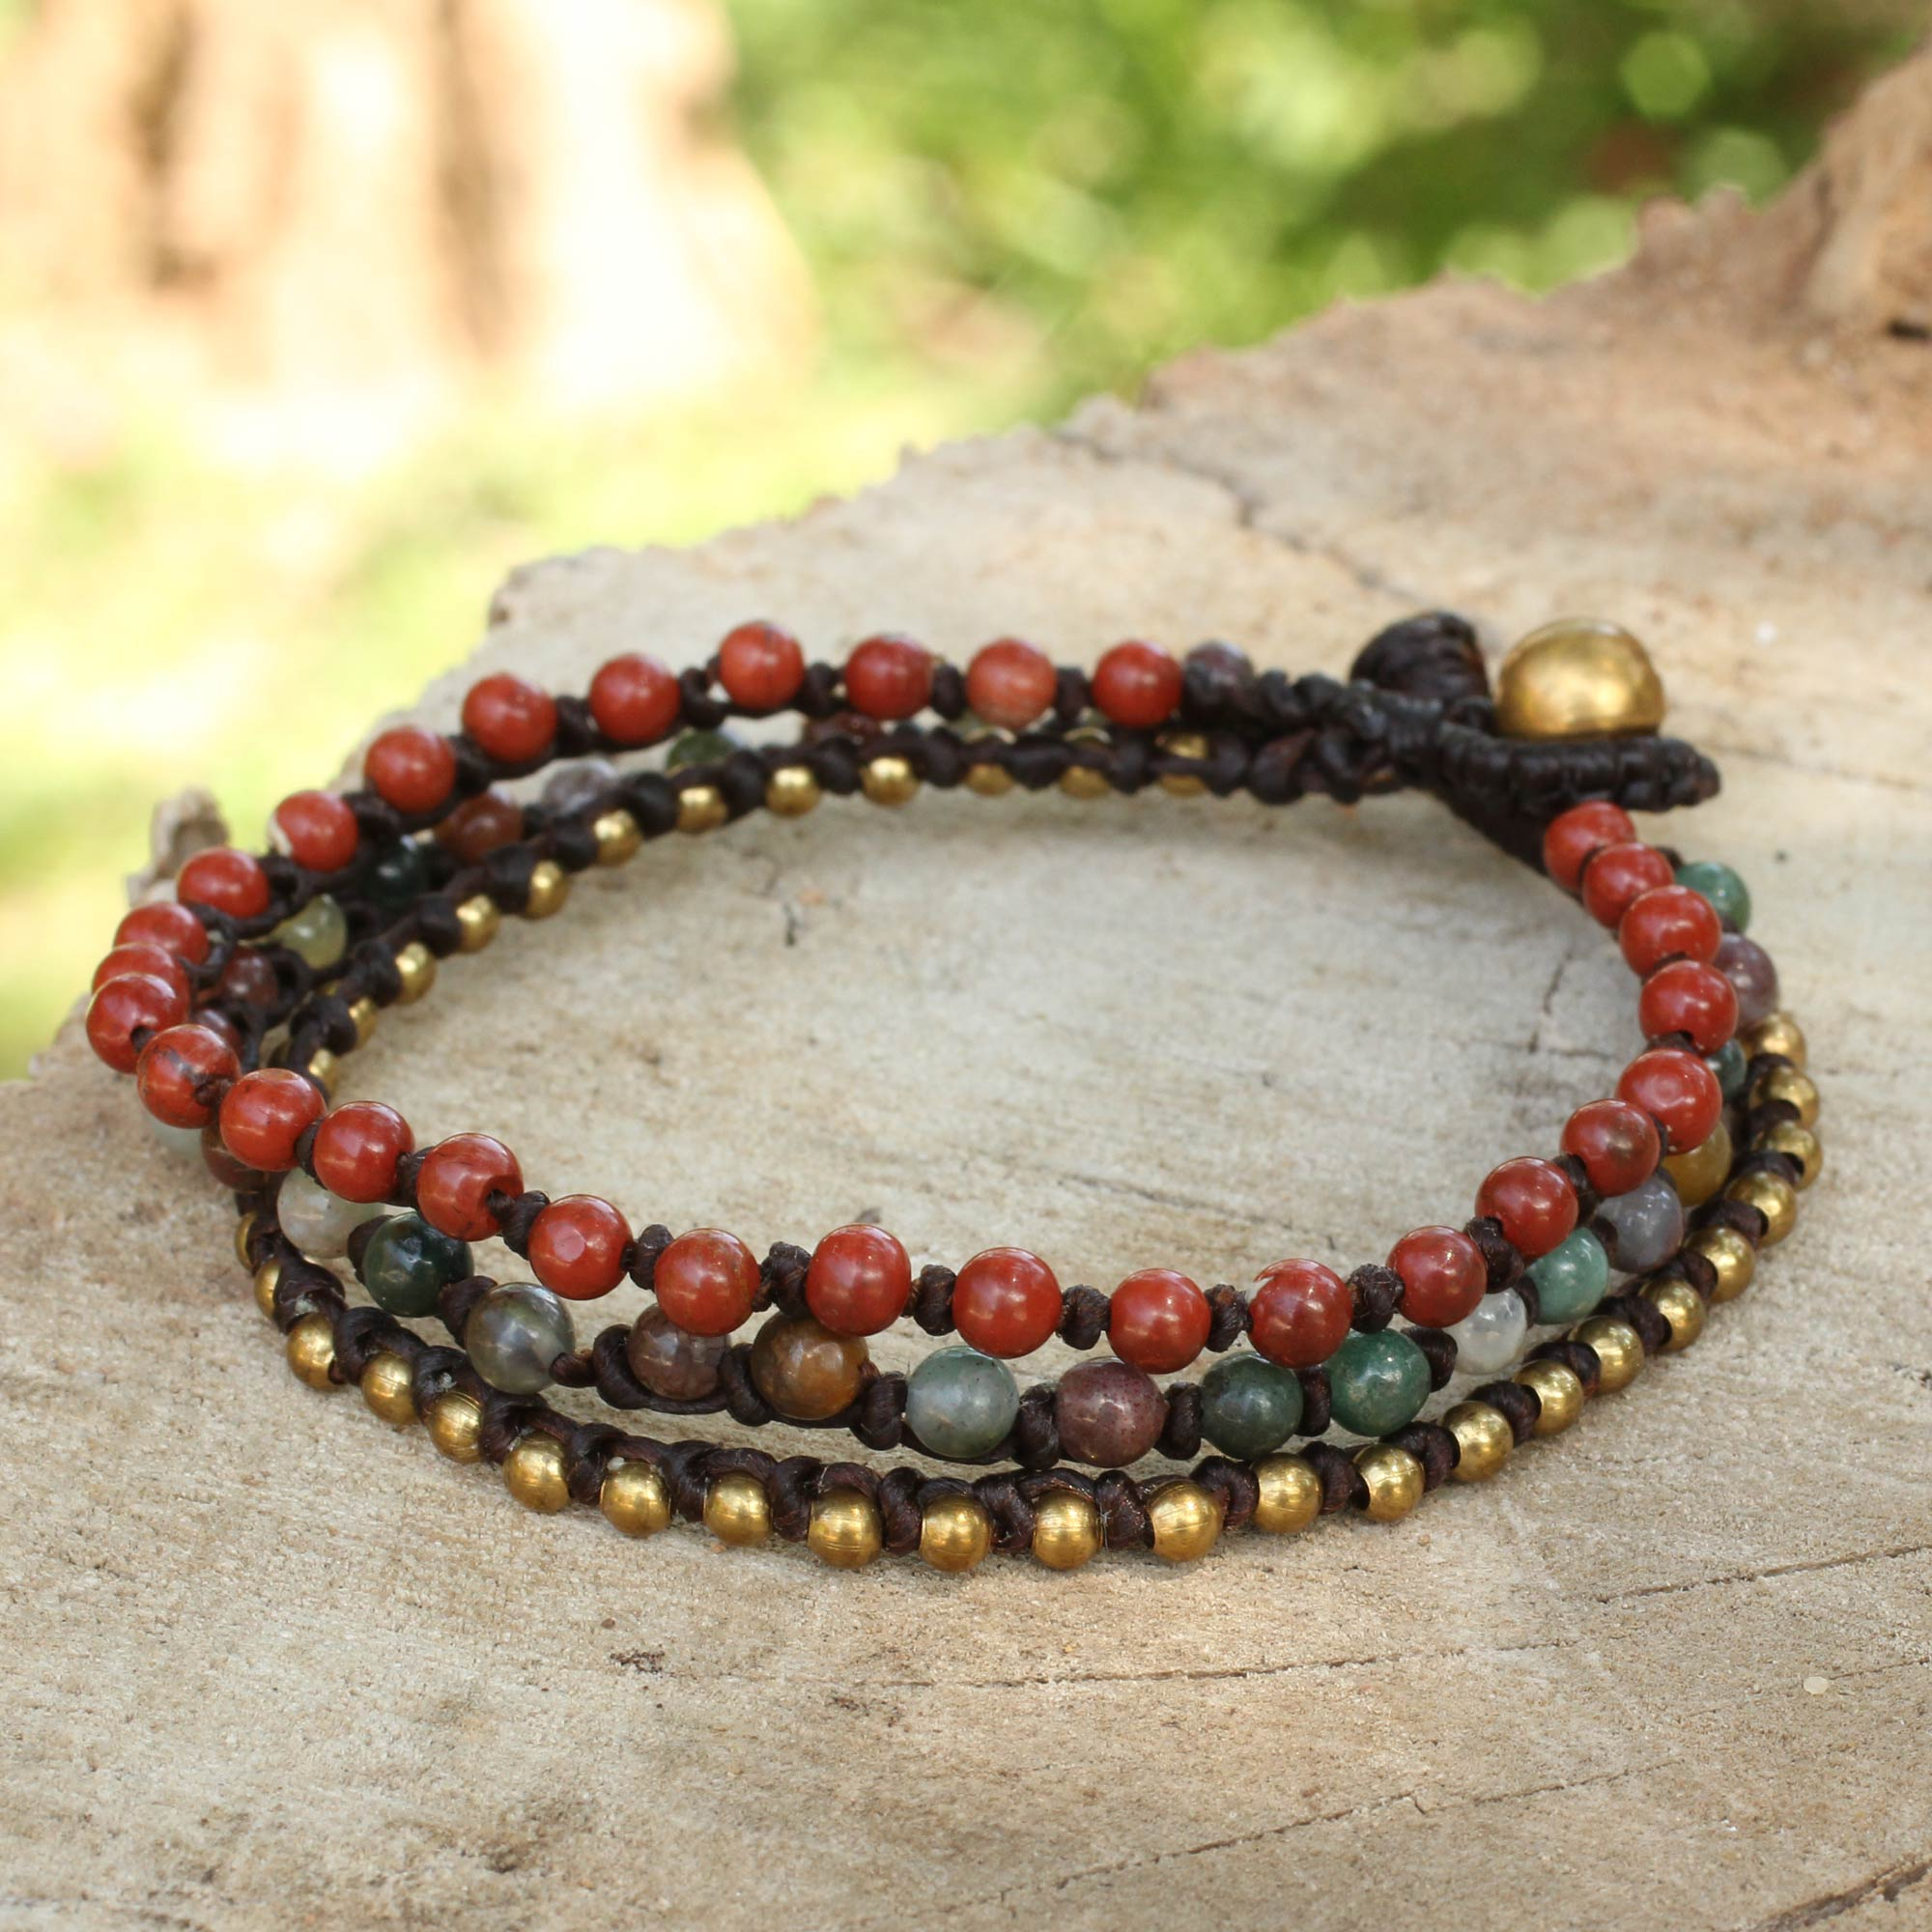 amader prayer wood women meditation hot bead men jewelry wooden bracelet product cross yoga onyx beads natural bracelets